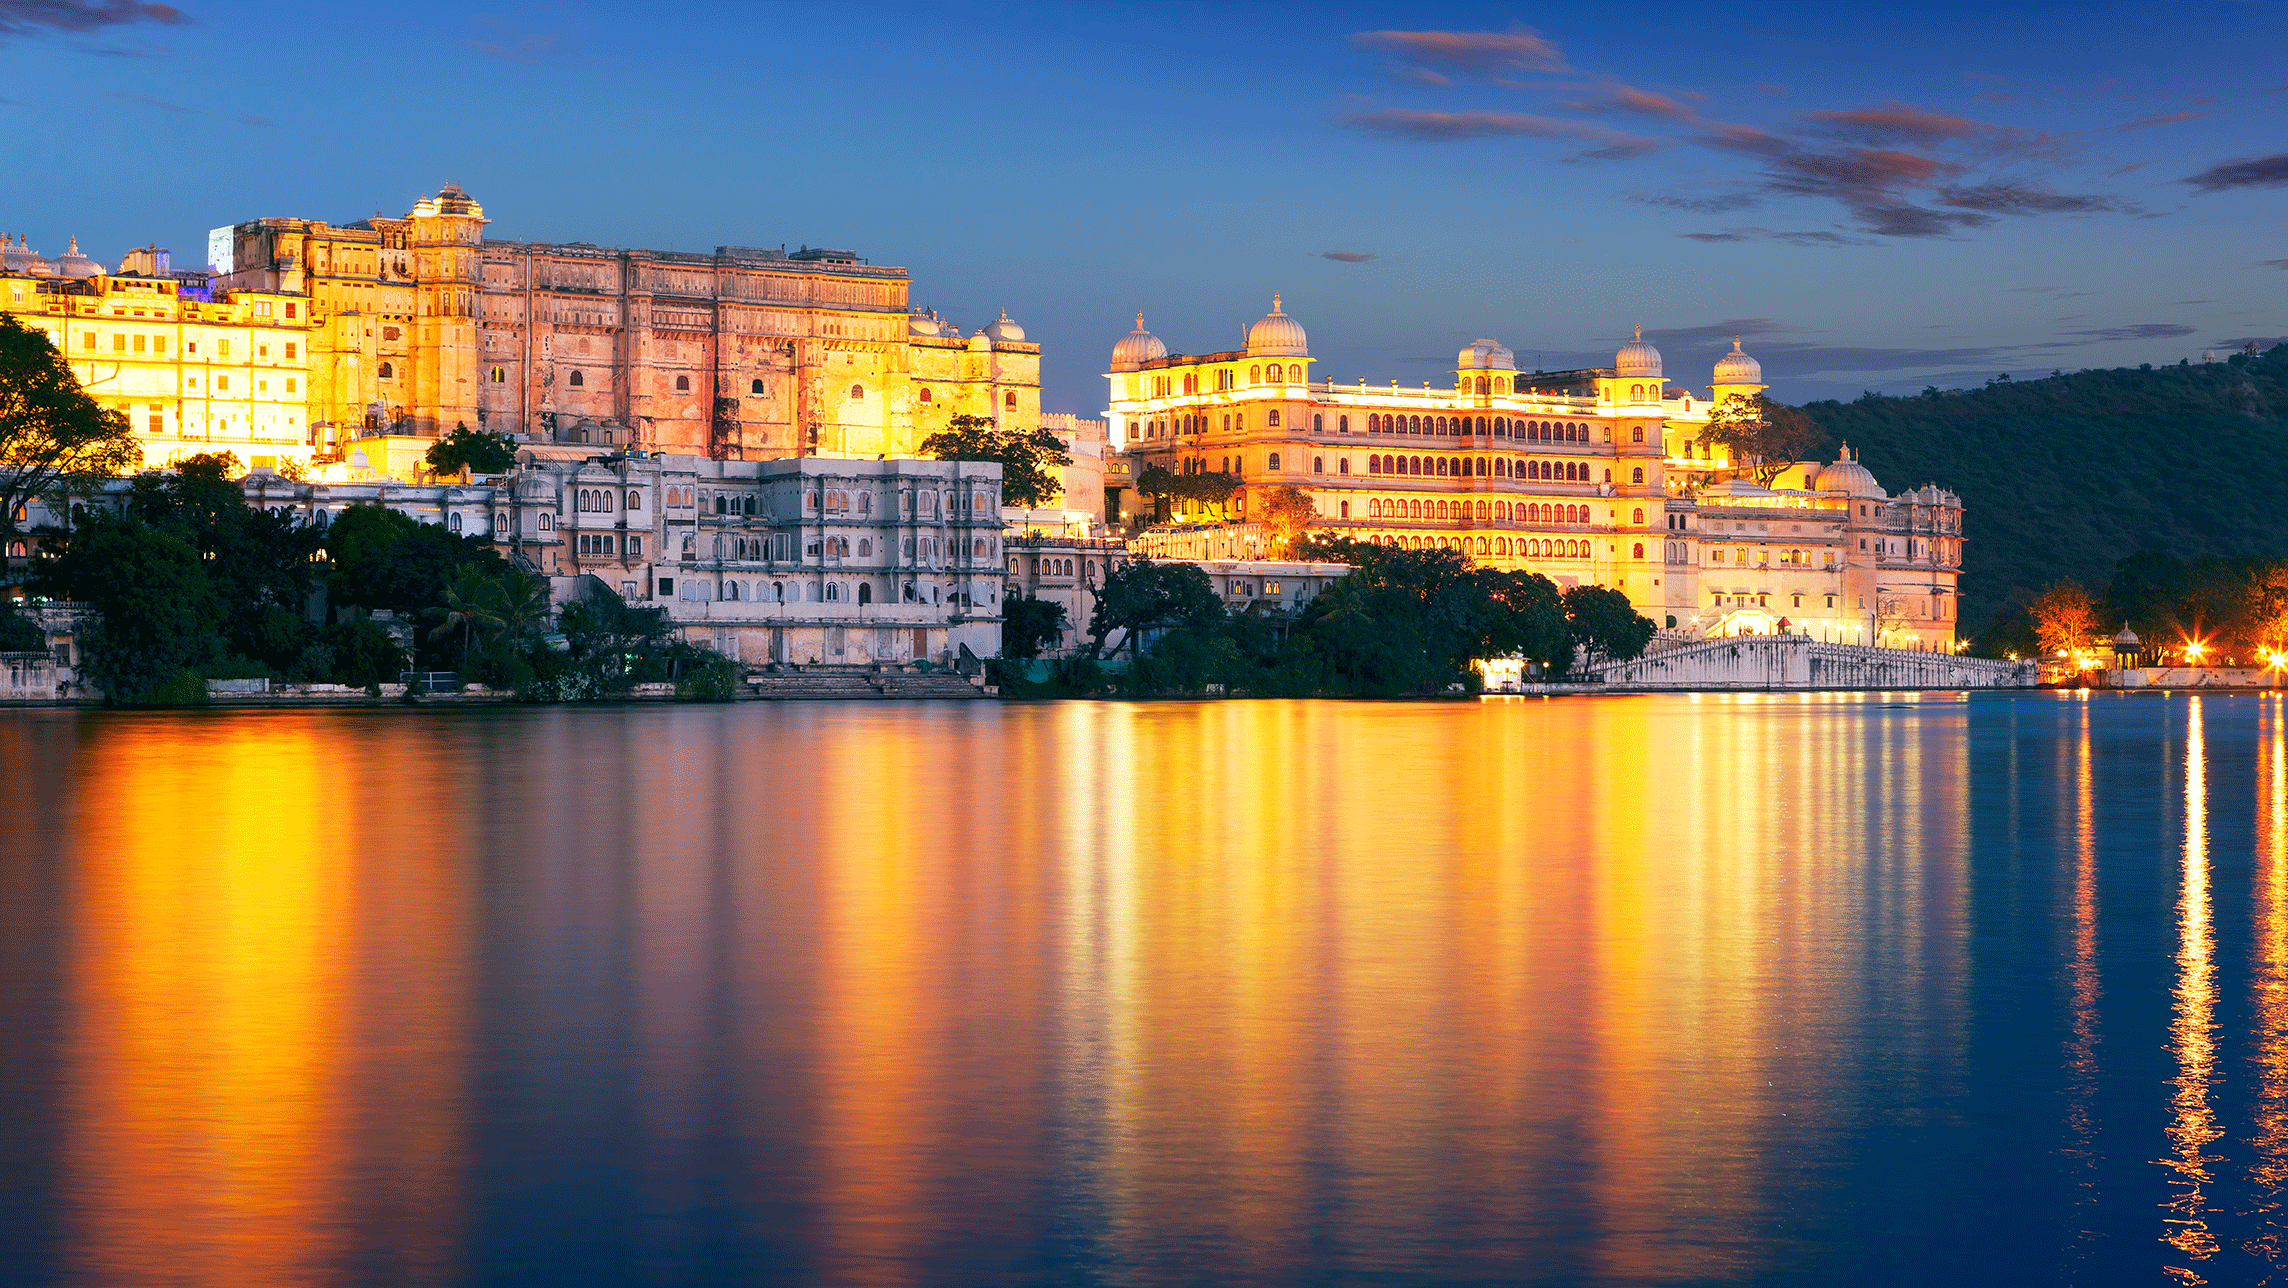 lake pichola activities besides exploring the splendid forts and palaces